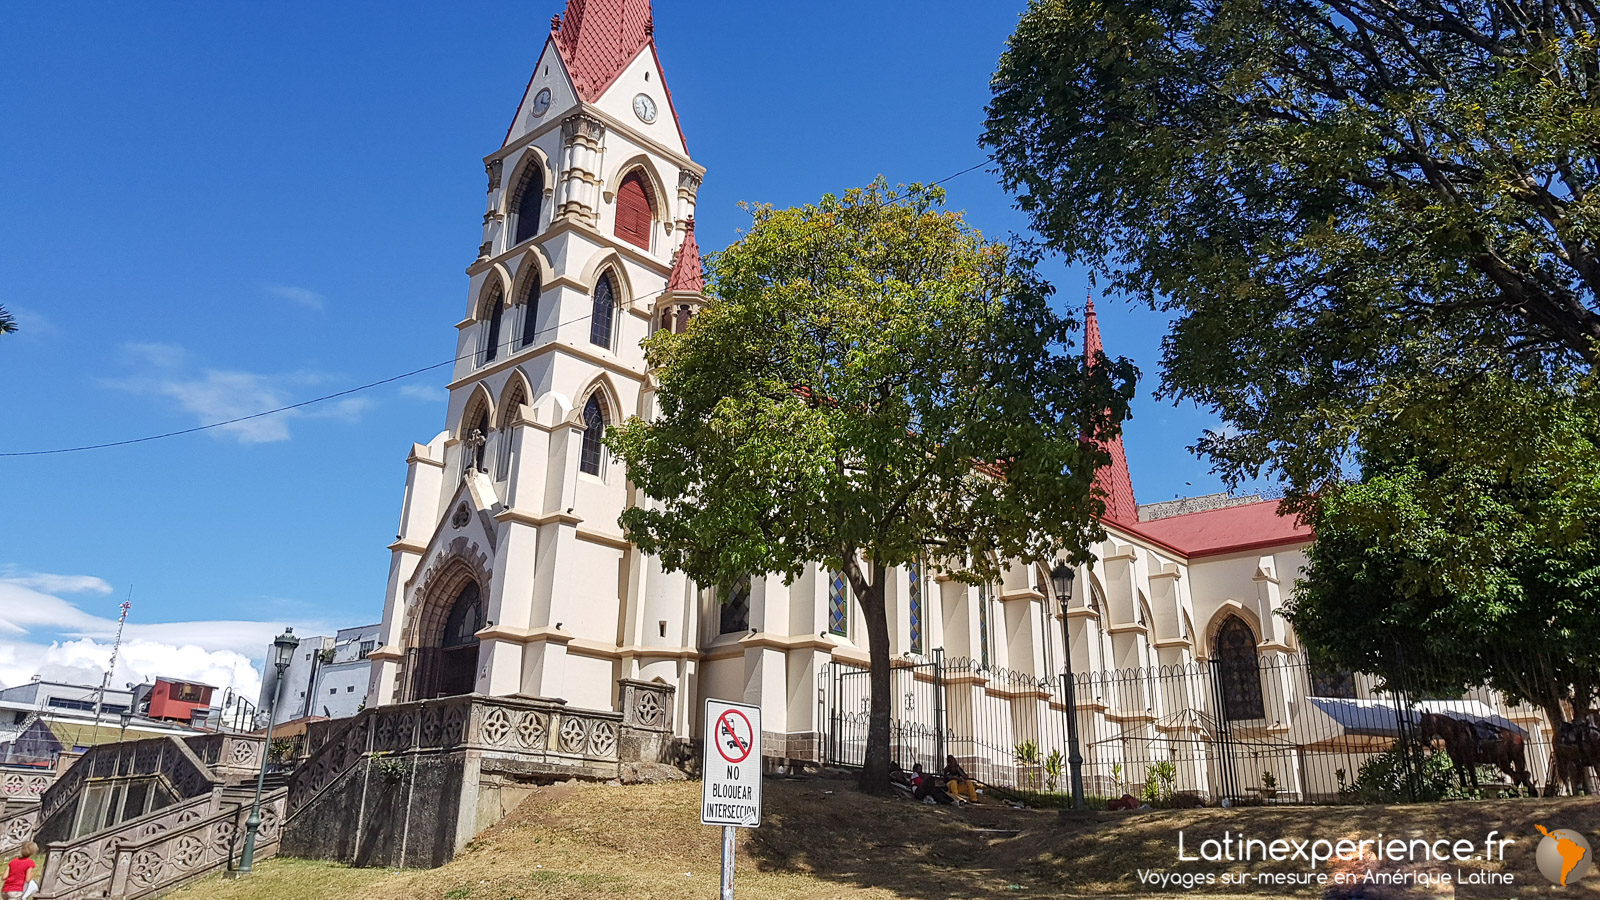 Costa Rica - San José - Eglise - Latinexperience voyages